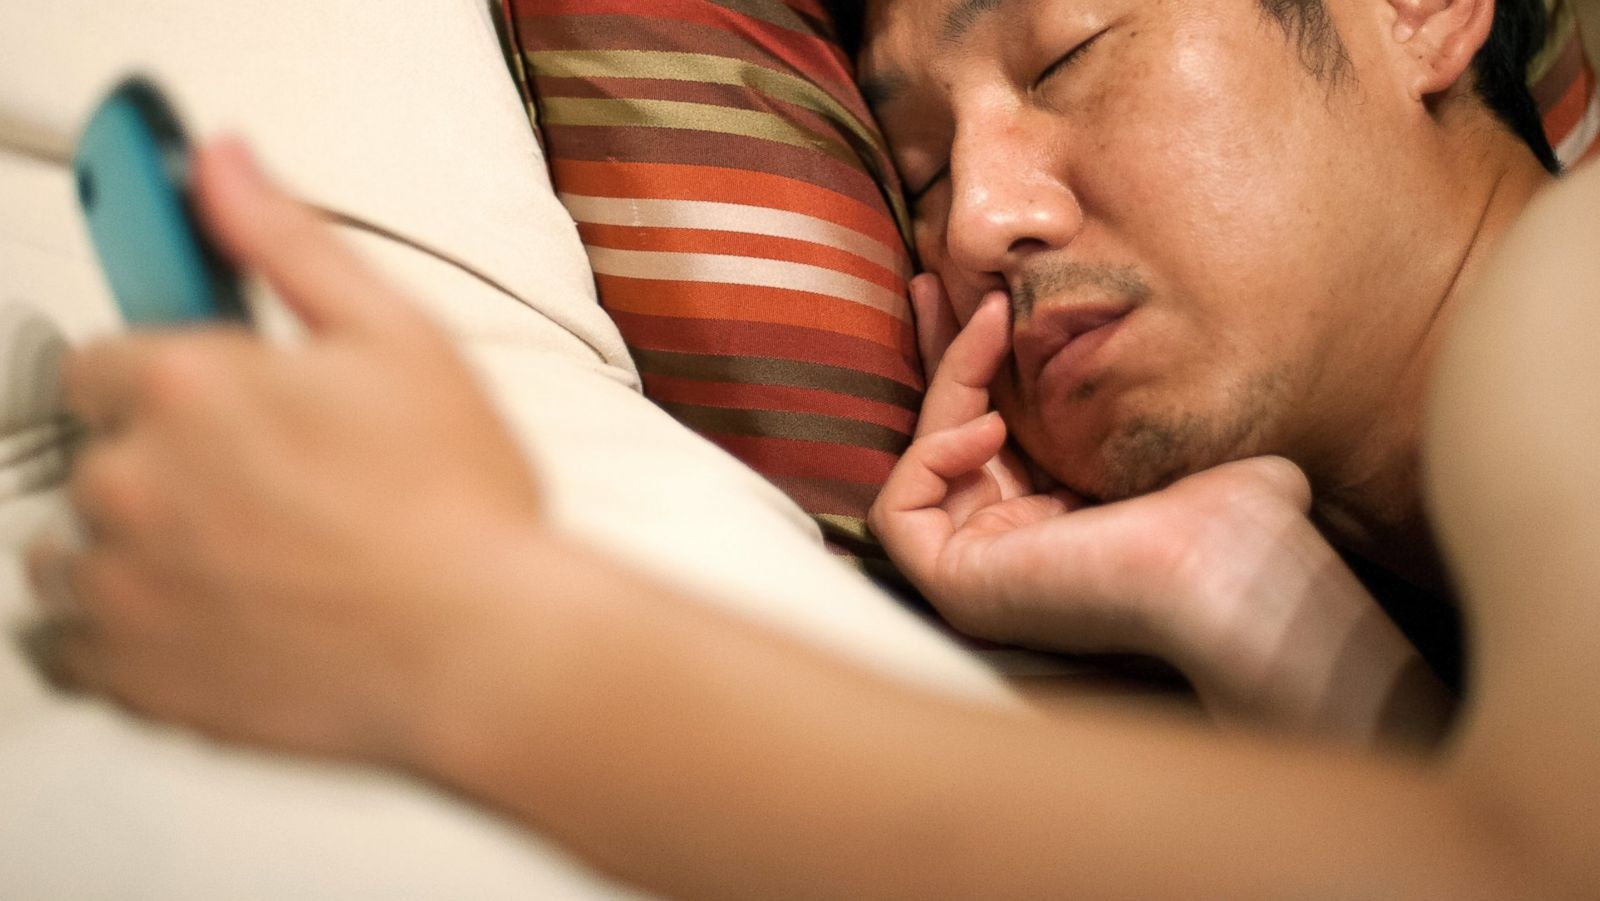 3 Reasons Not to Sleep With Your Phone in the Bed - ABC News